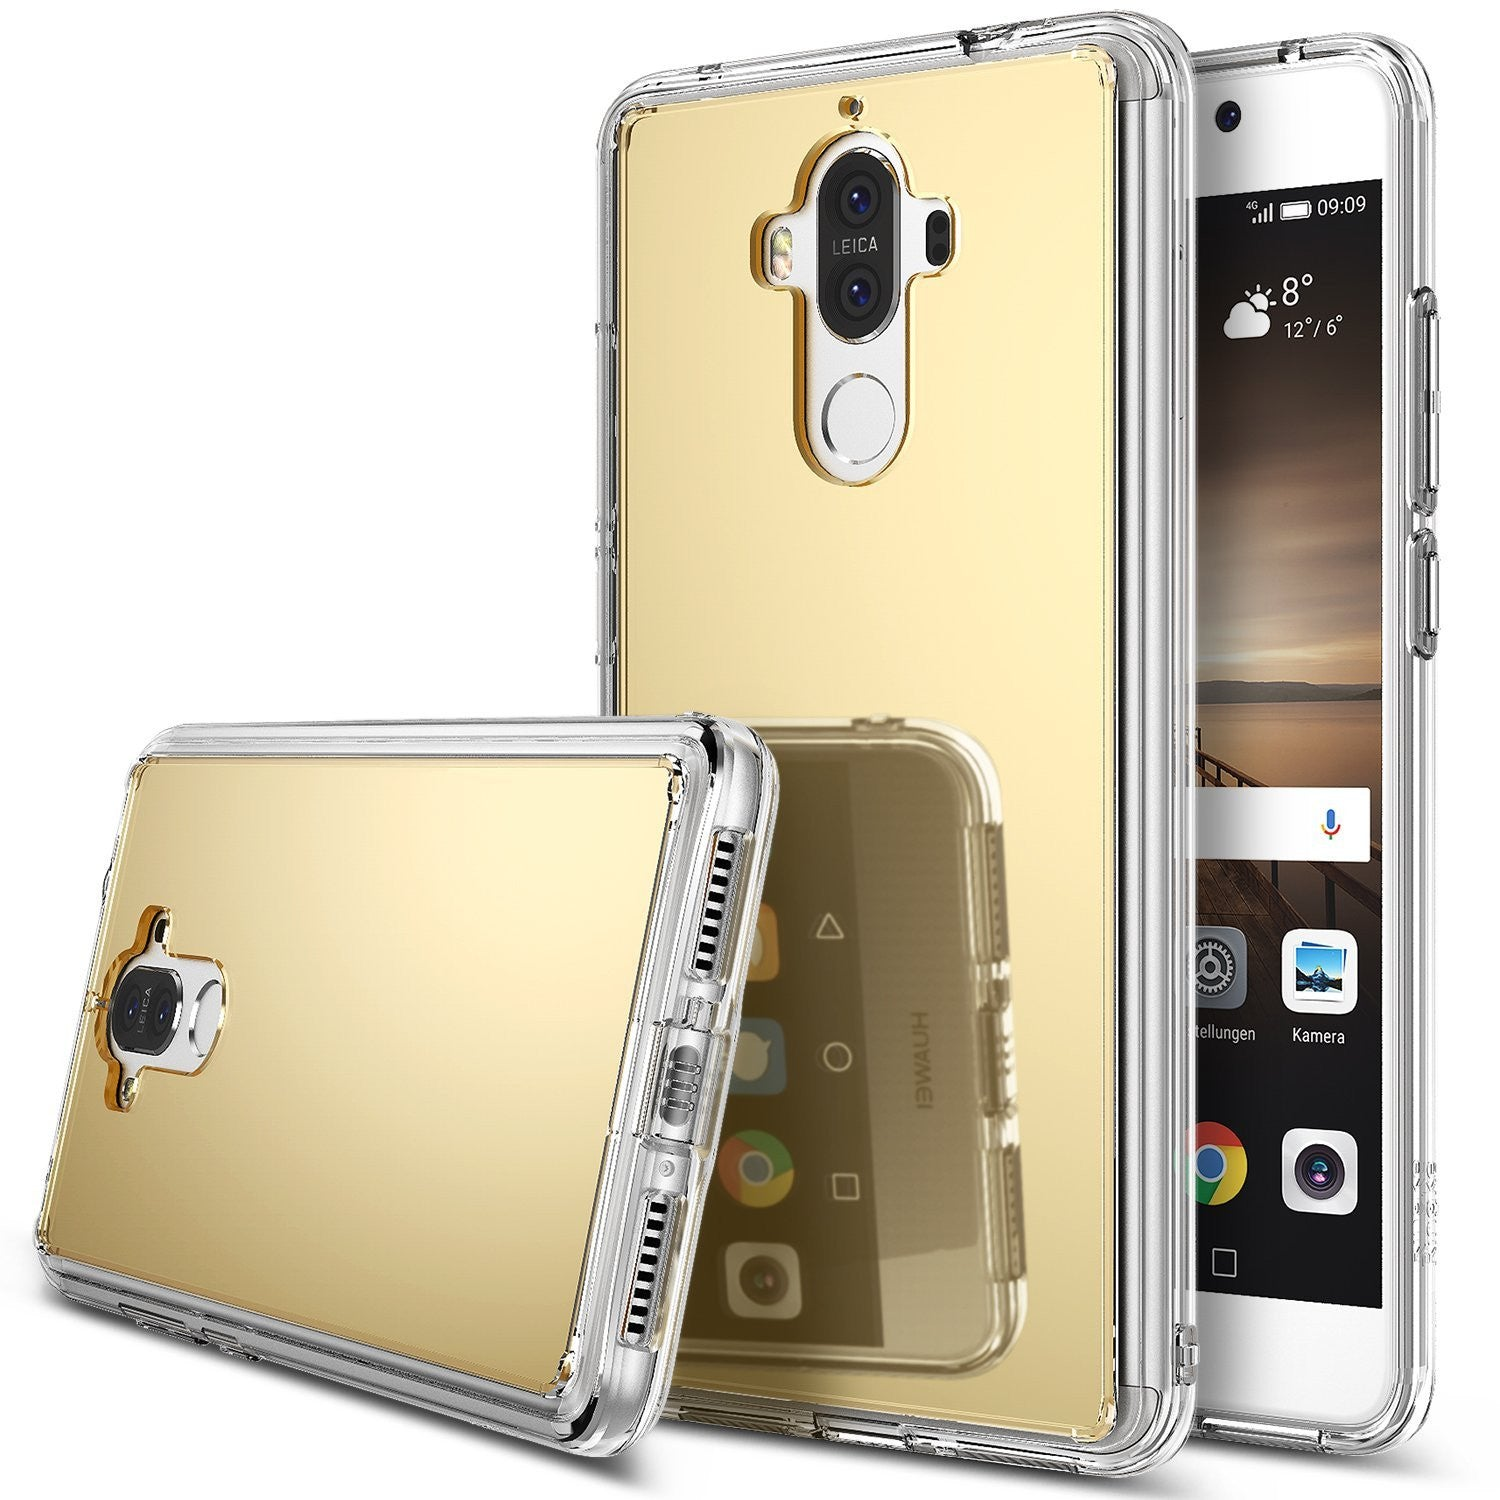 huawei mate 9 case ringke fusion case mirror case bright reflection radiant luxury mirror case royal gold